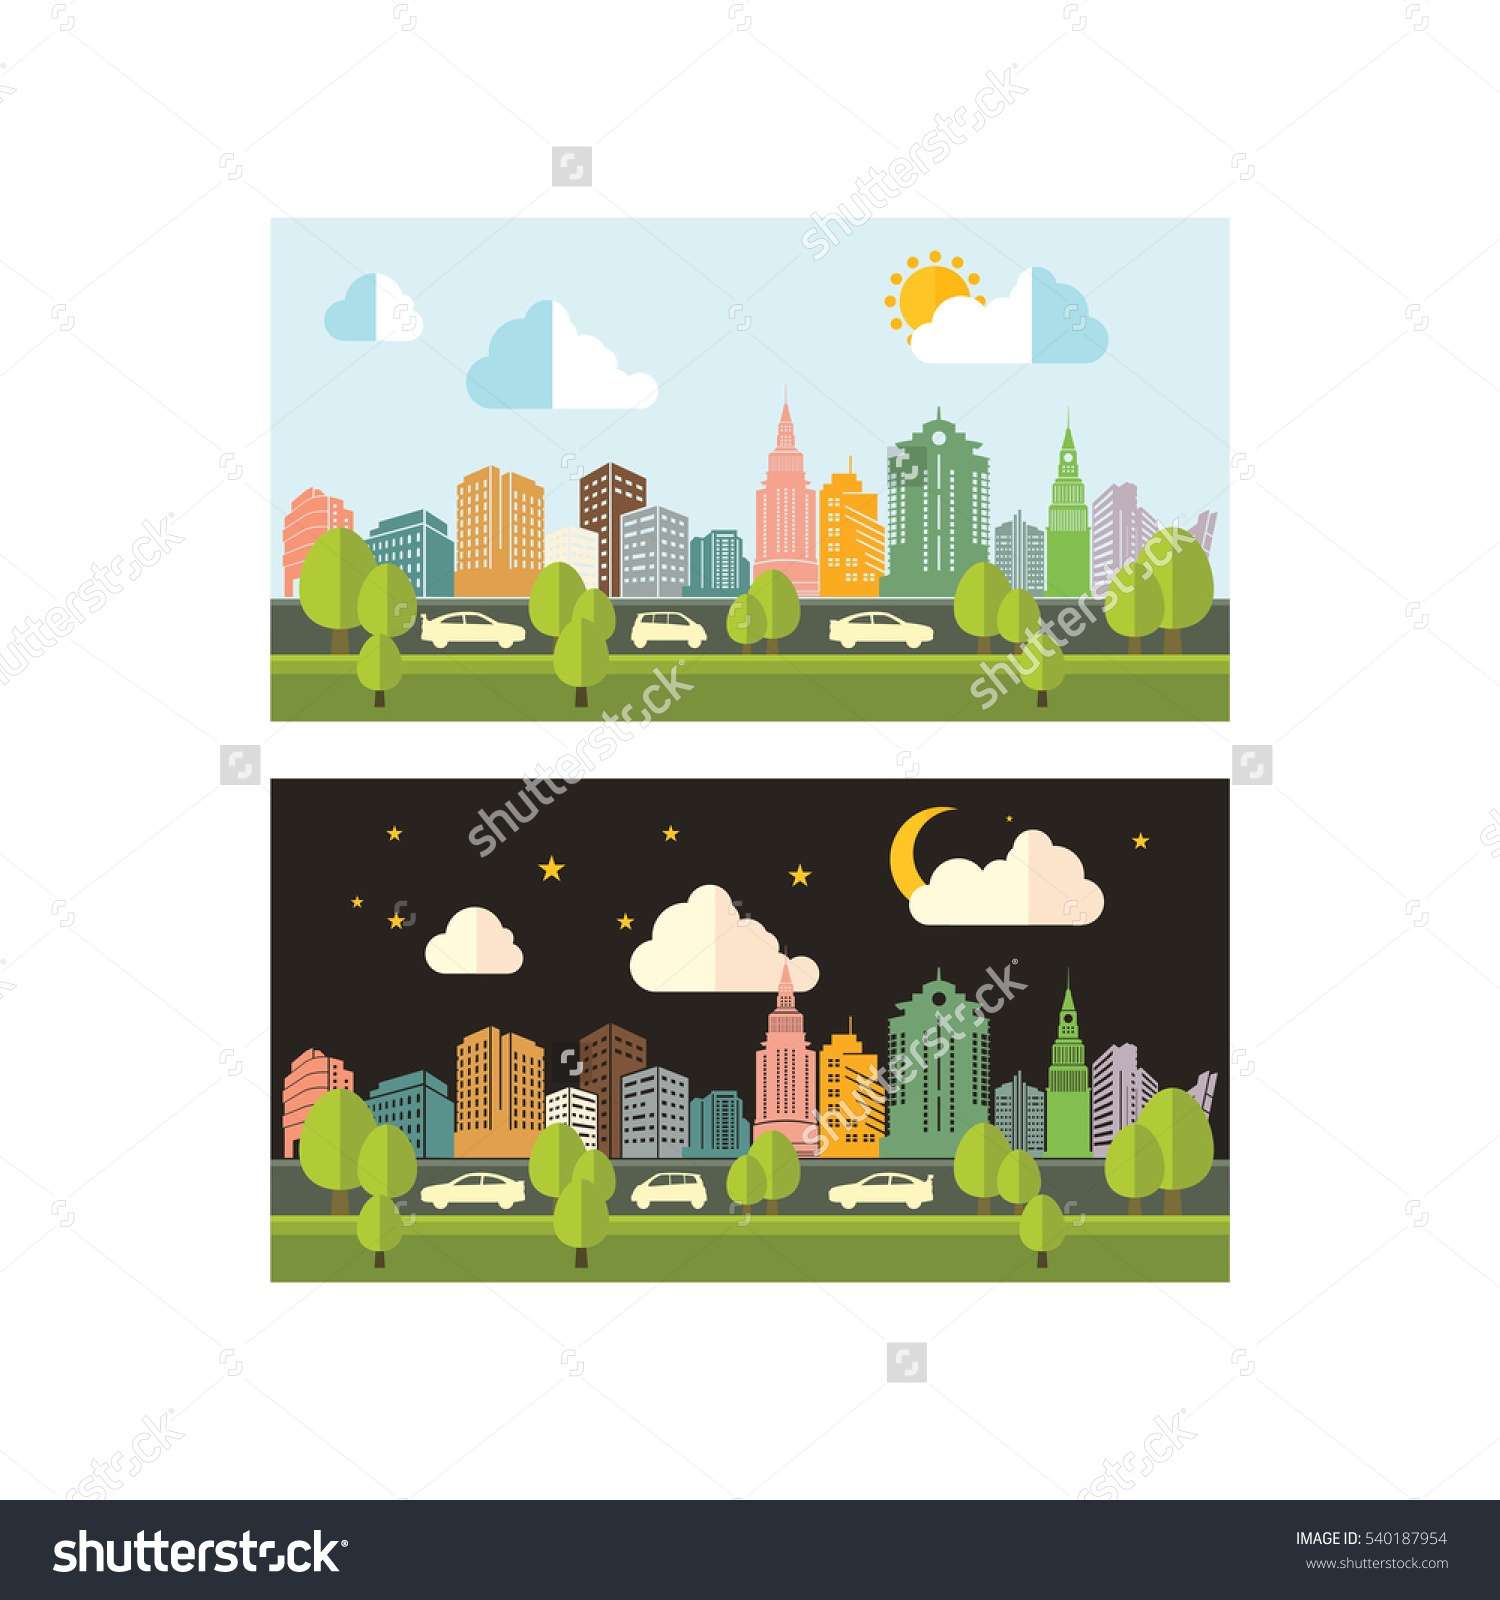 Day Night Traffic Activity City Skyline Stock Vector 540187954.